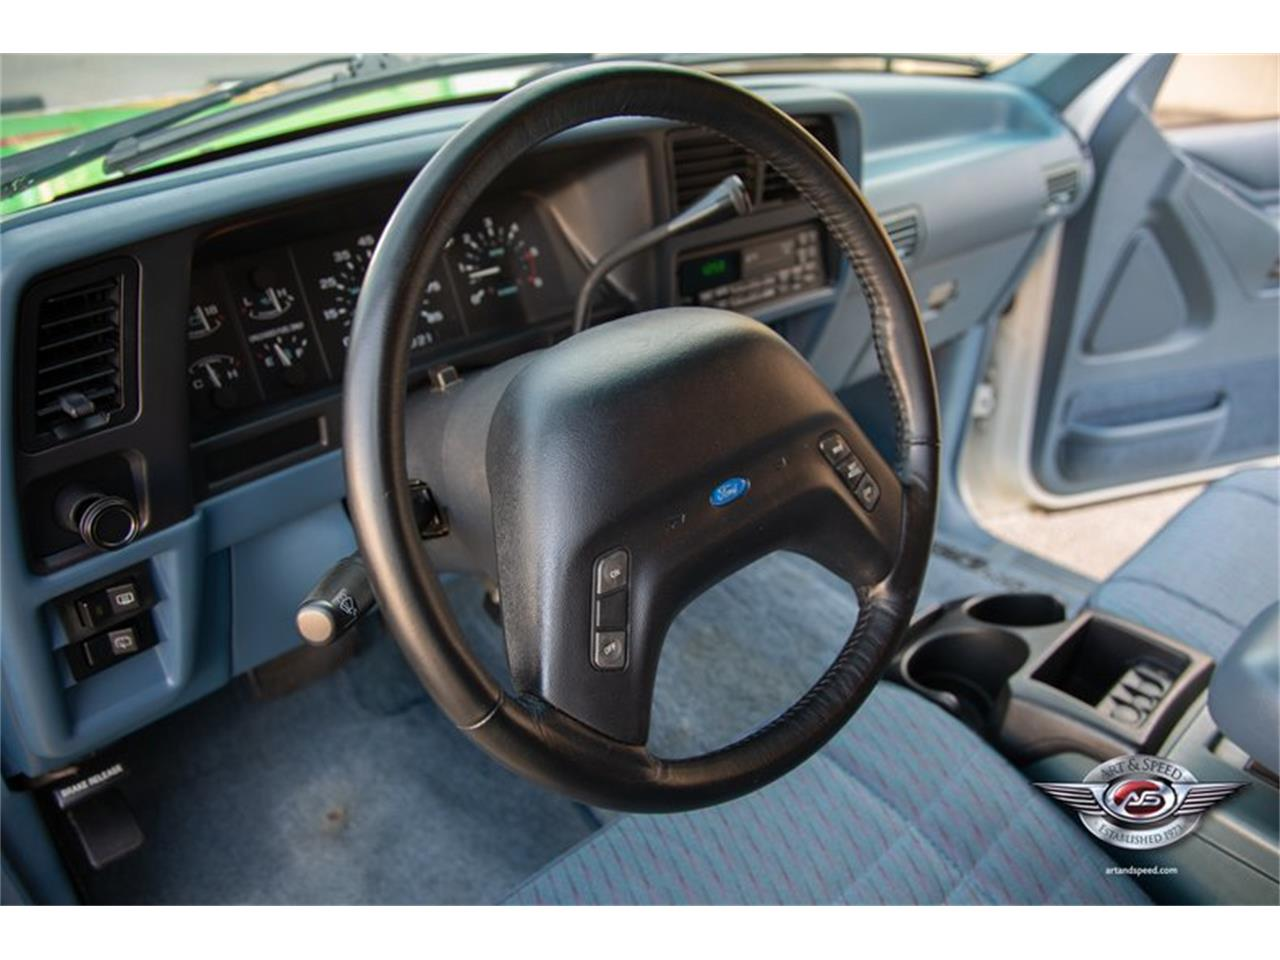 Large Picture of '93 Ford Explorer located in Tennessee - $8,900.00 - NRIV